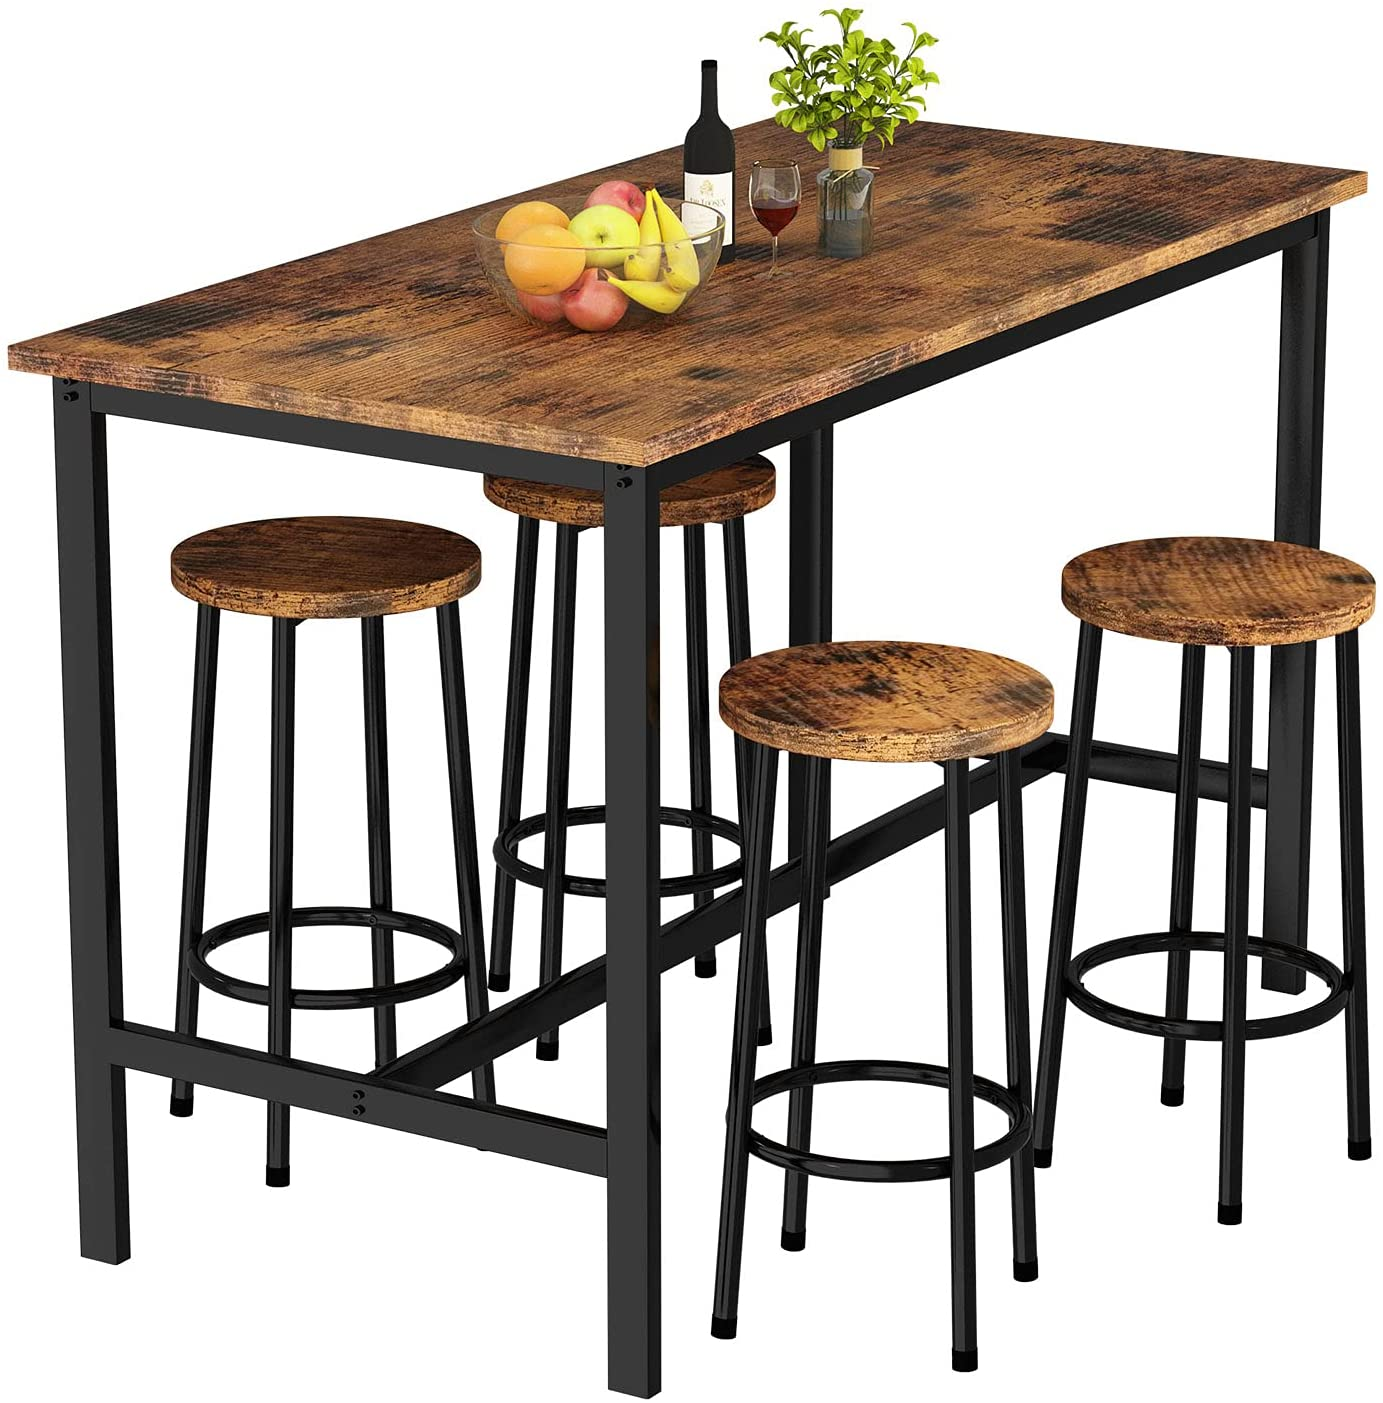 Buy AWQM Bar Table and Chairs Set Industrial Counter Height Pub ...